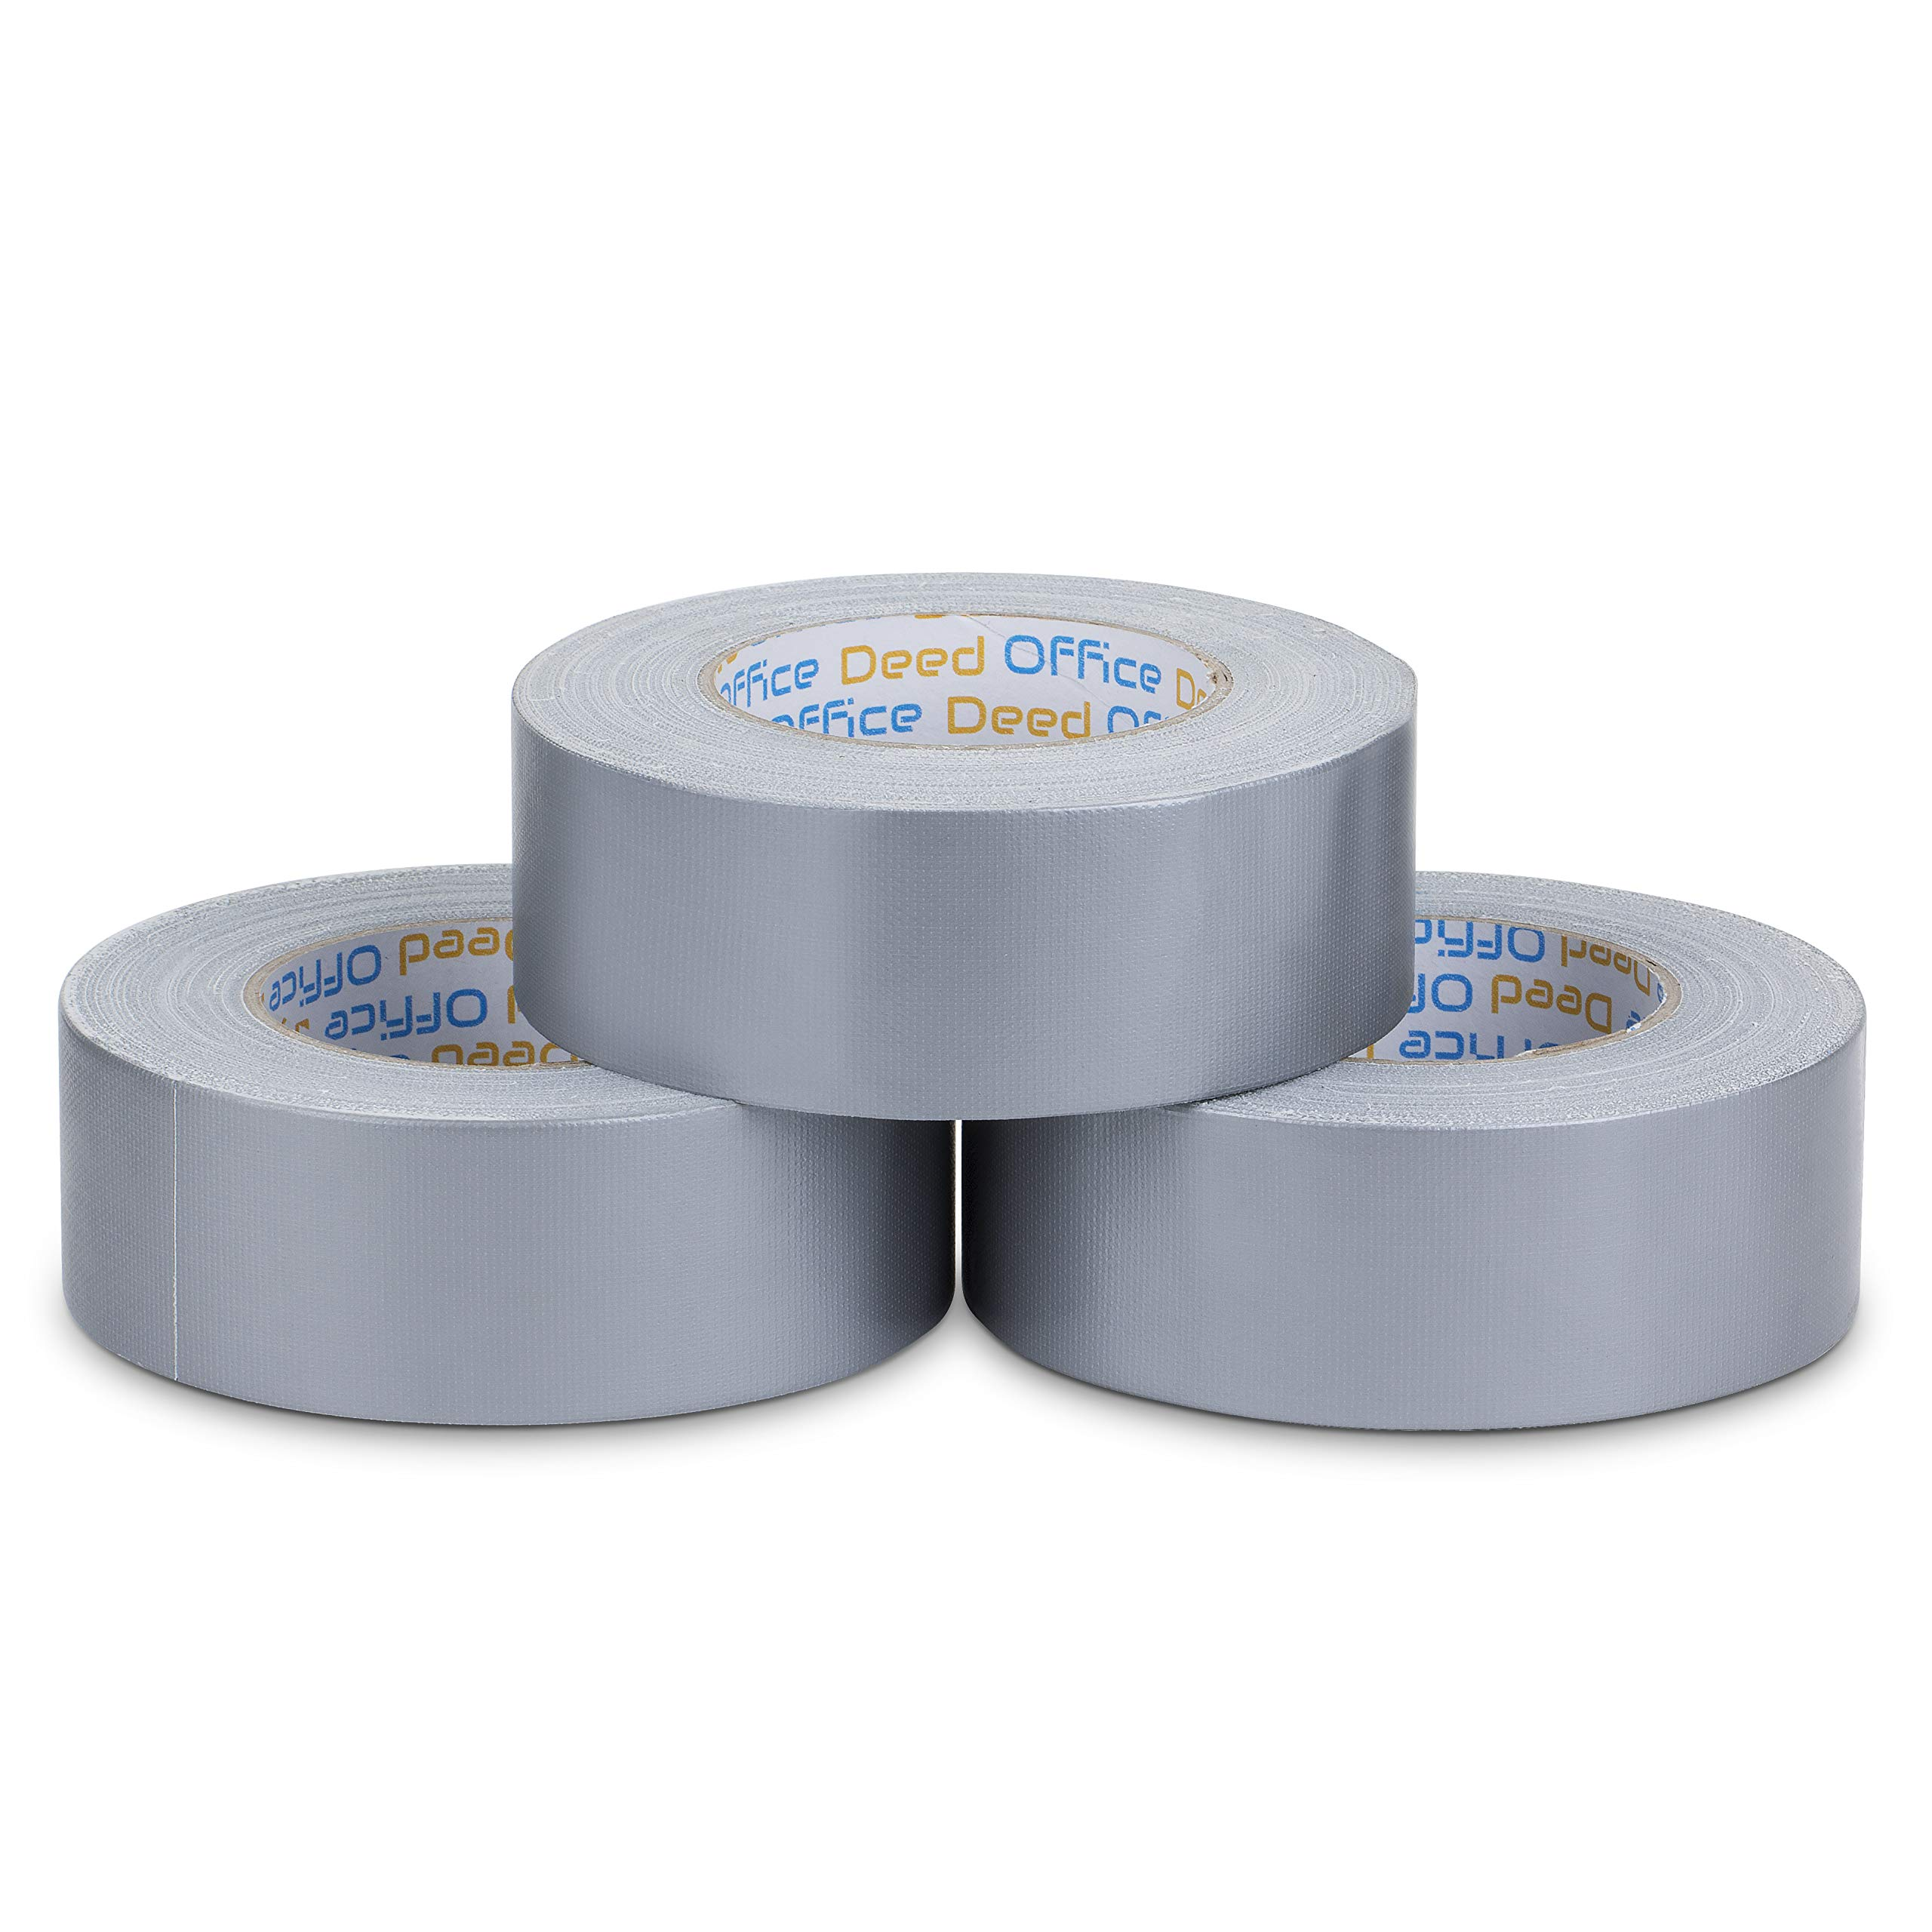 Office Deed Professional Grade Duct Tape, 3-Pack, Silver Color, 11mil Thick (1.88 inch x 40 Yards), 48mm x 36m - Designed for Crafts, Home Improvement Projects, Repairs, Maintenance, Total 120 Yards